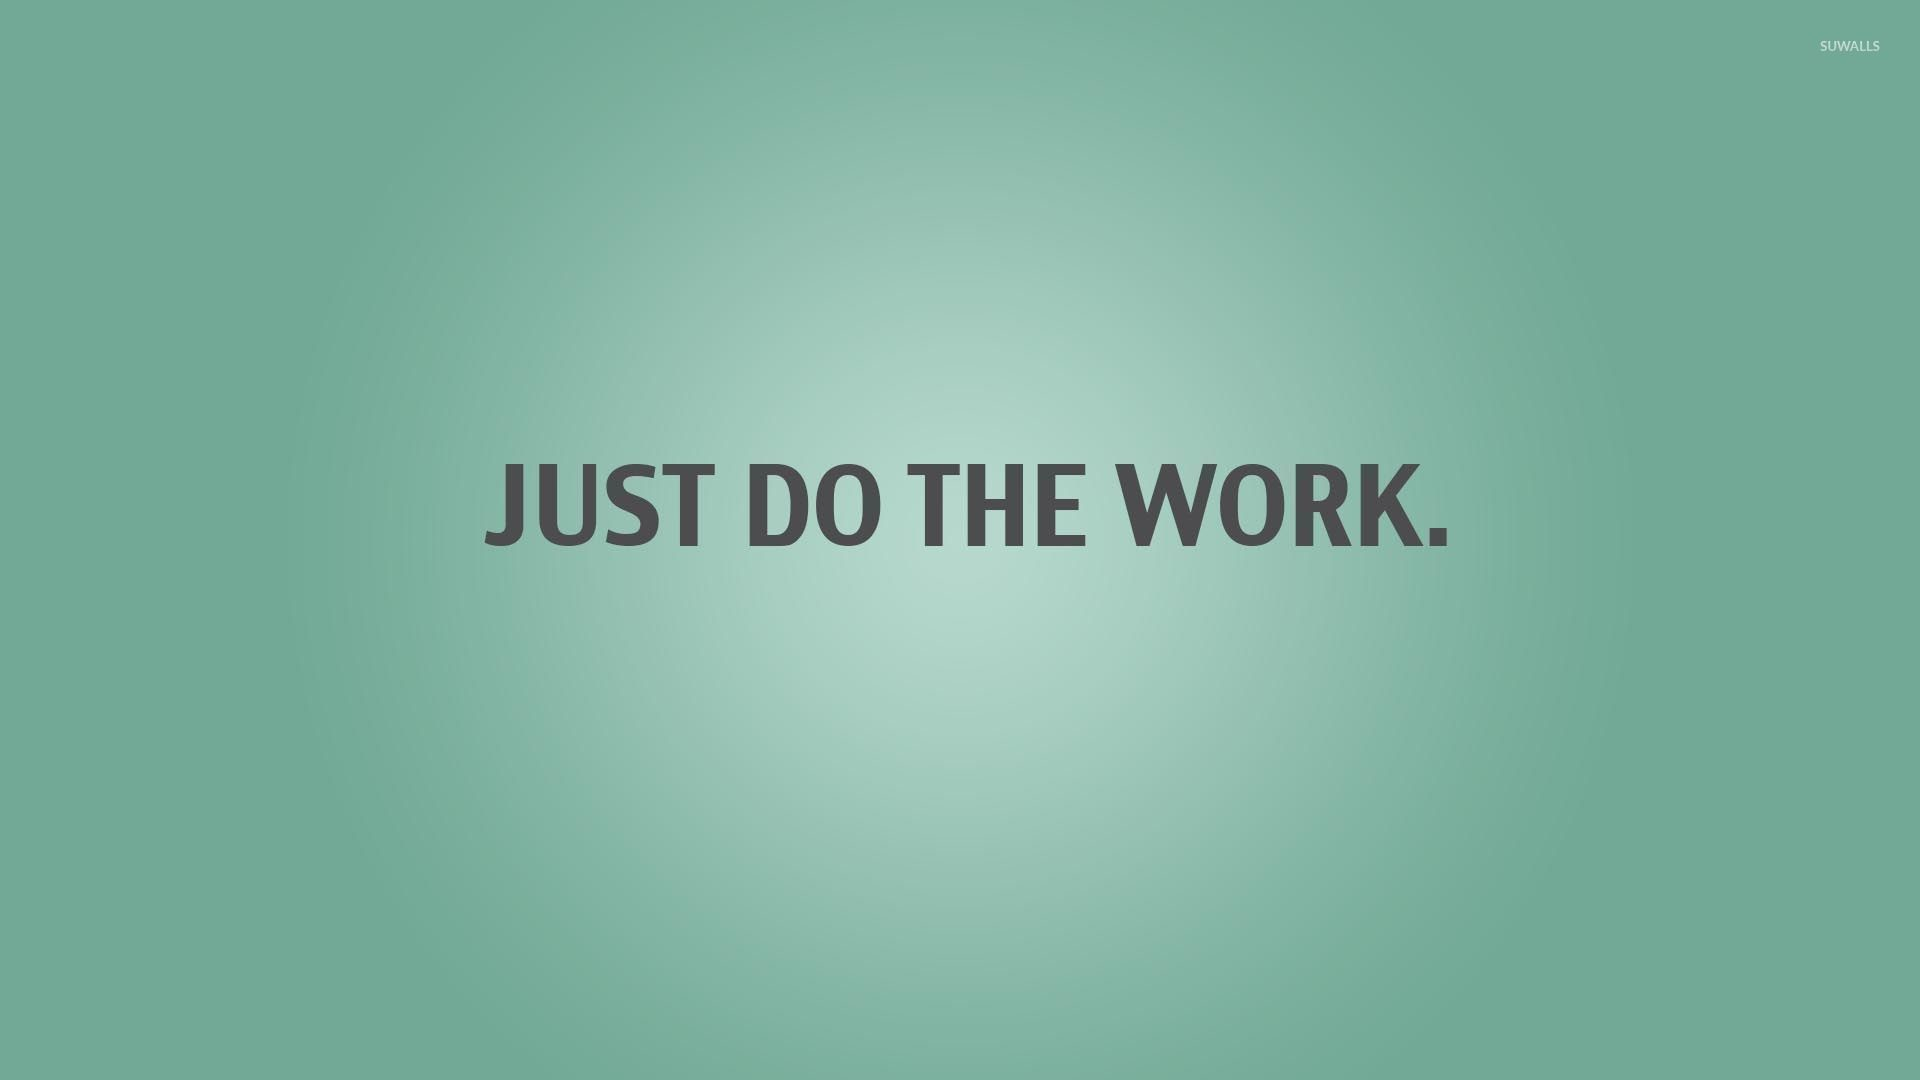 Hard work wallpaper 81 images 1920x1080 30 uplifting quotes on increasing productivity and working hard geckoandfly 2018 thecheapjerseys Image collections